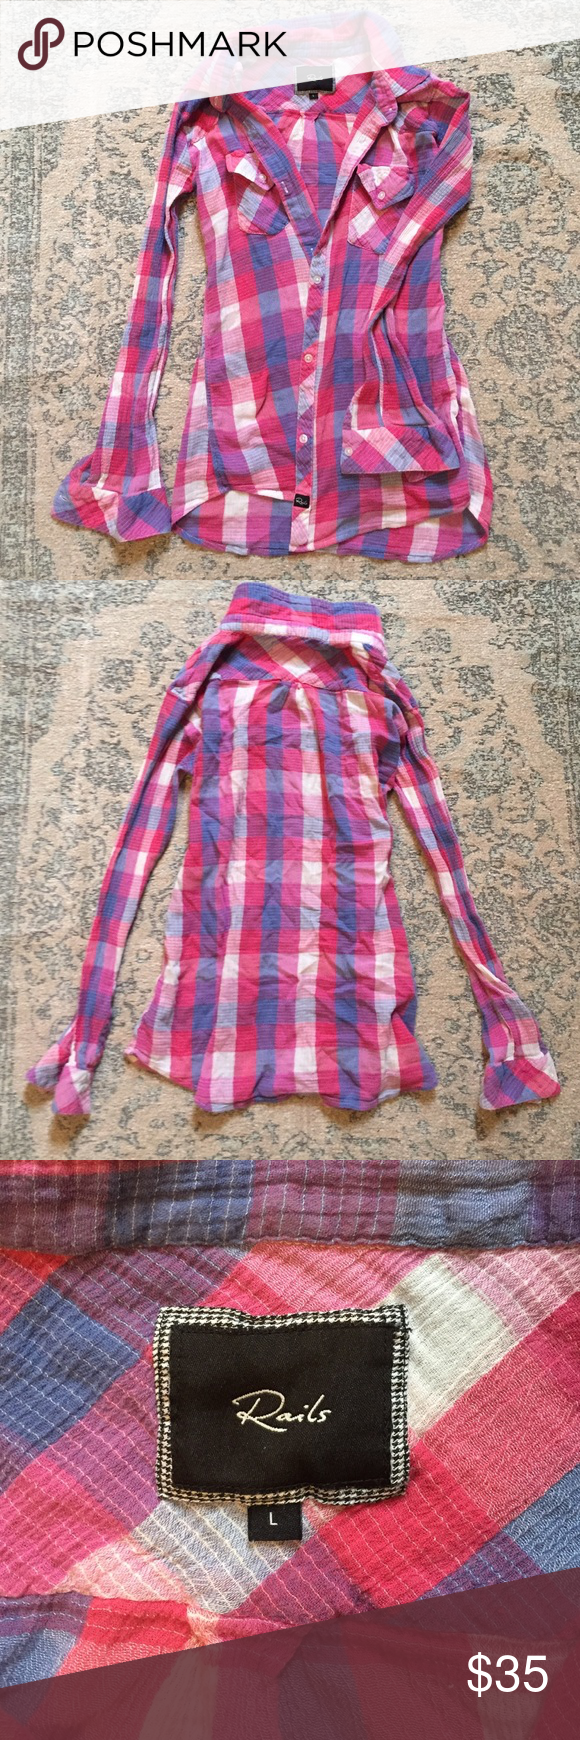 Rails Flannel Rails pink Flannel. Very light weight, thin material. Great for over a tank top or to complete your look tying around the waist!  Size large. Sleeves need ironing as shown in photo. Rails Tops Button Down Shirts